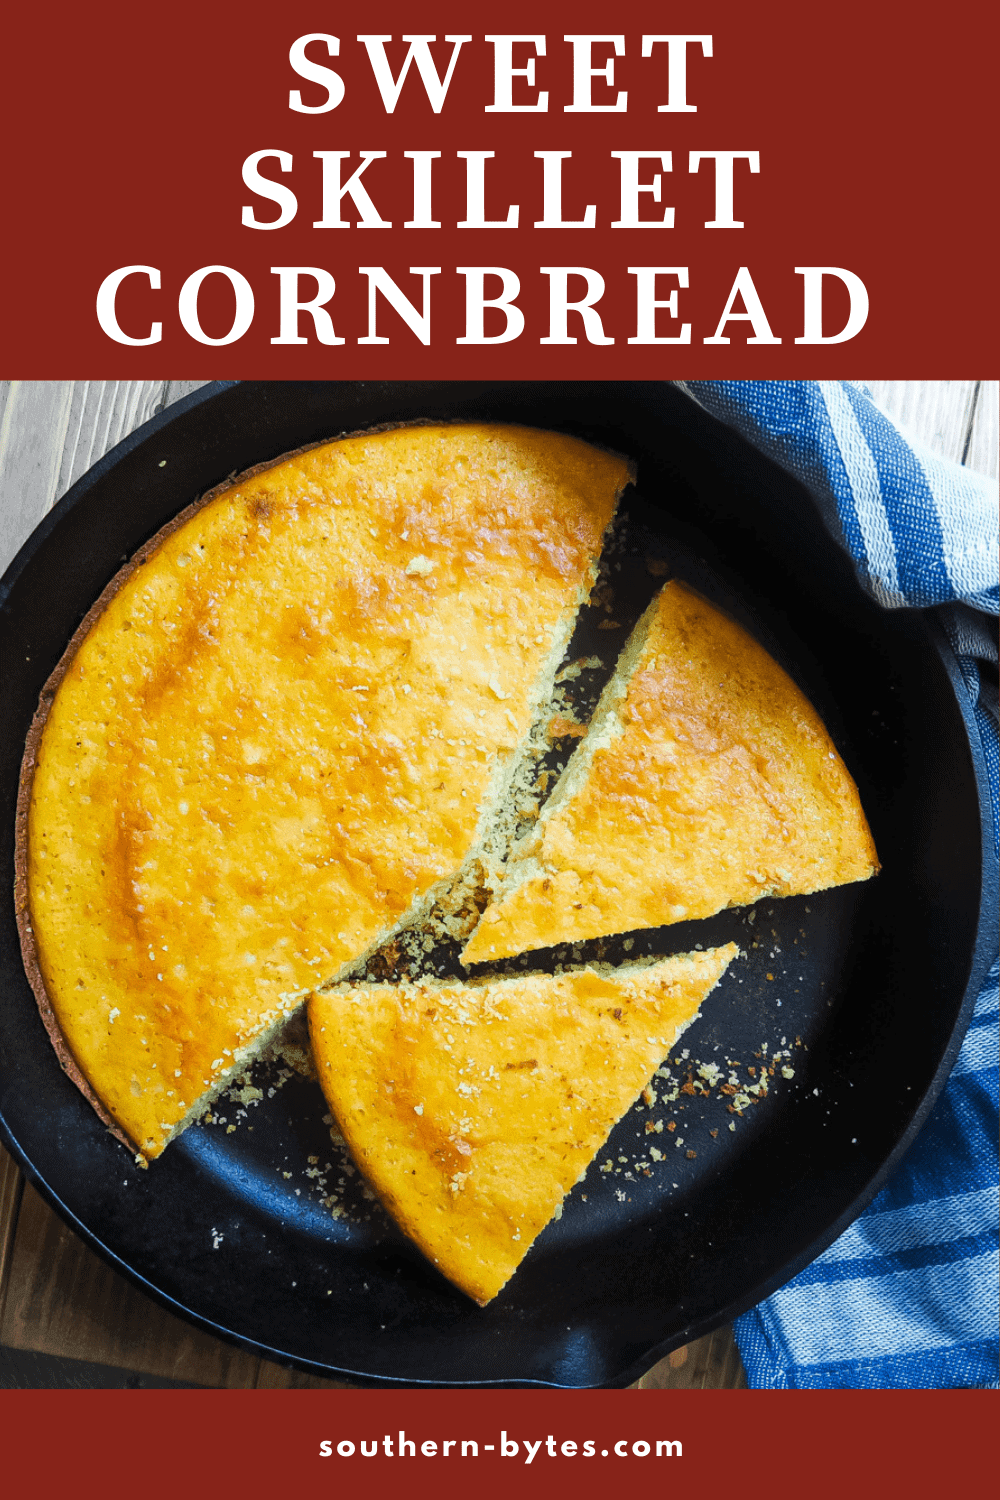 Cornbread in a cast iron skillet with a red and white dish towel on a gray wood background.